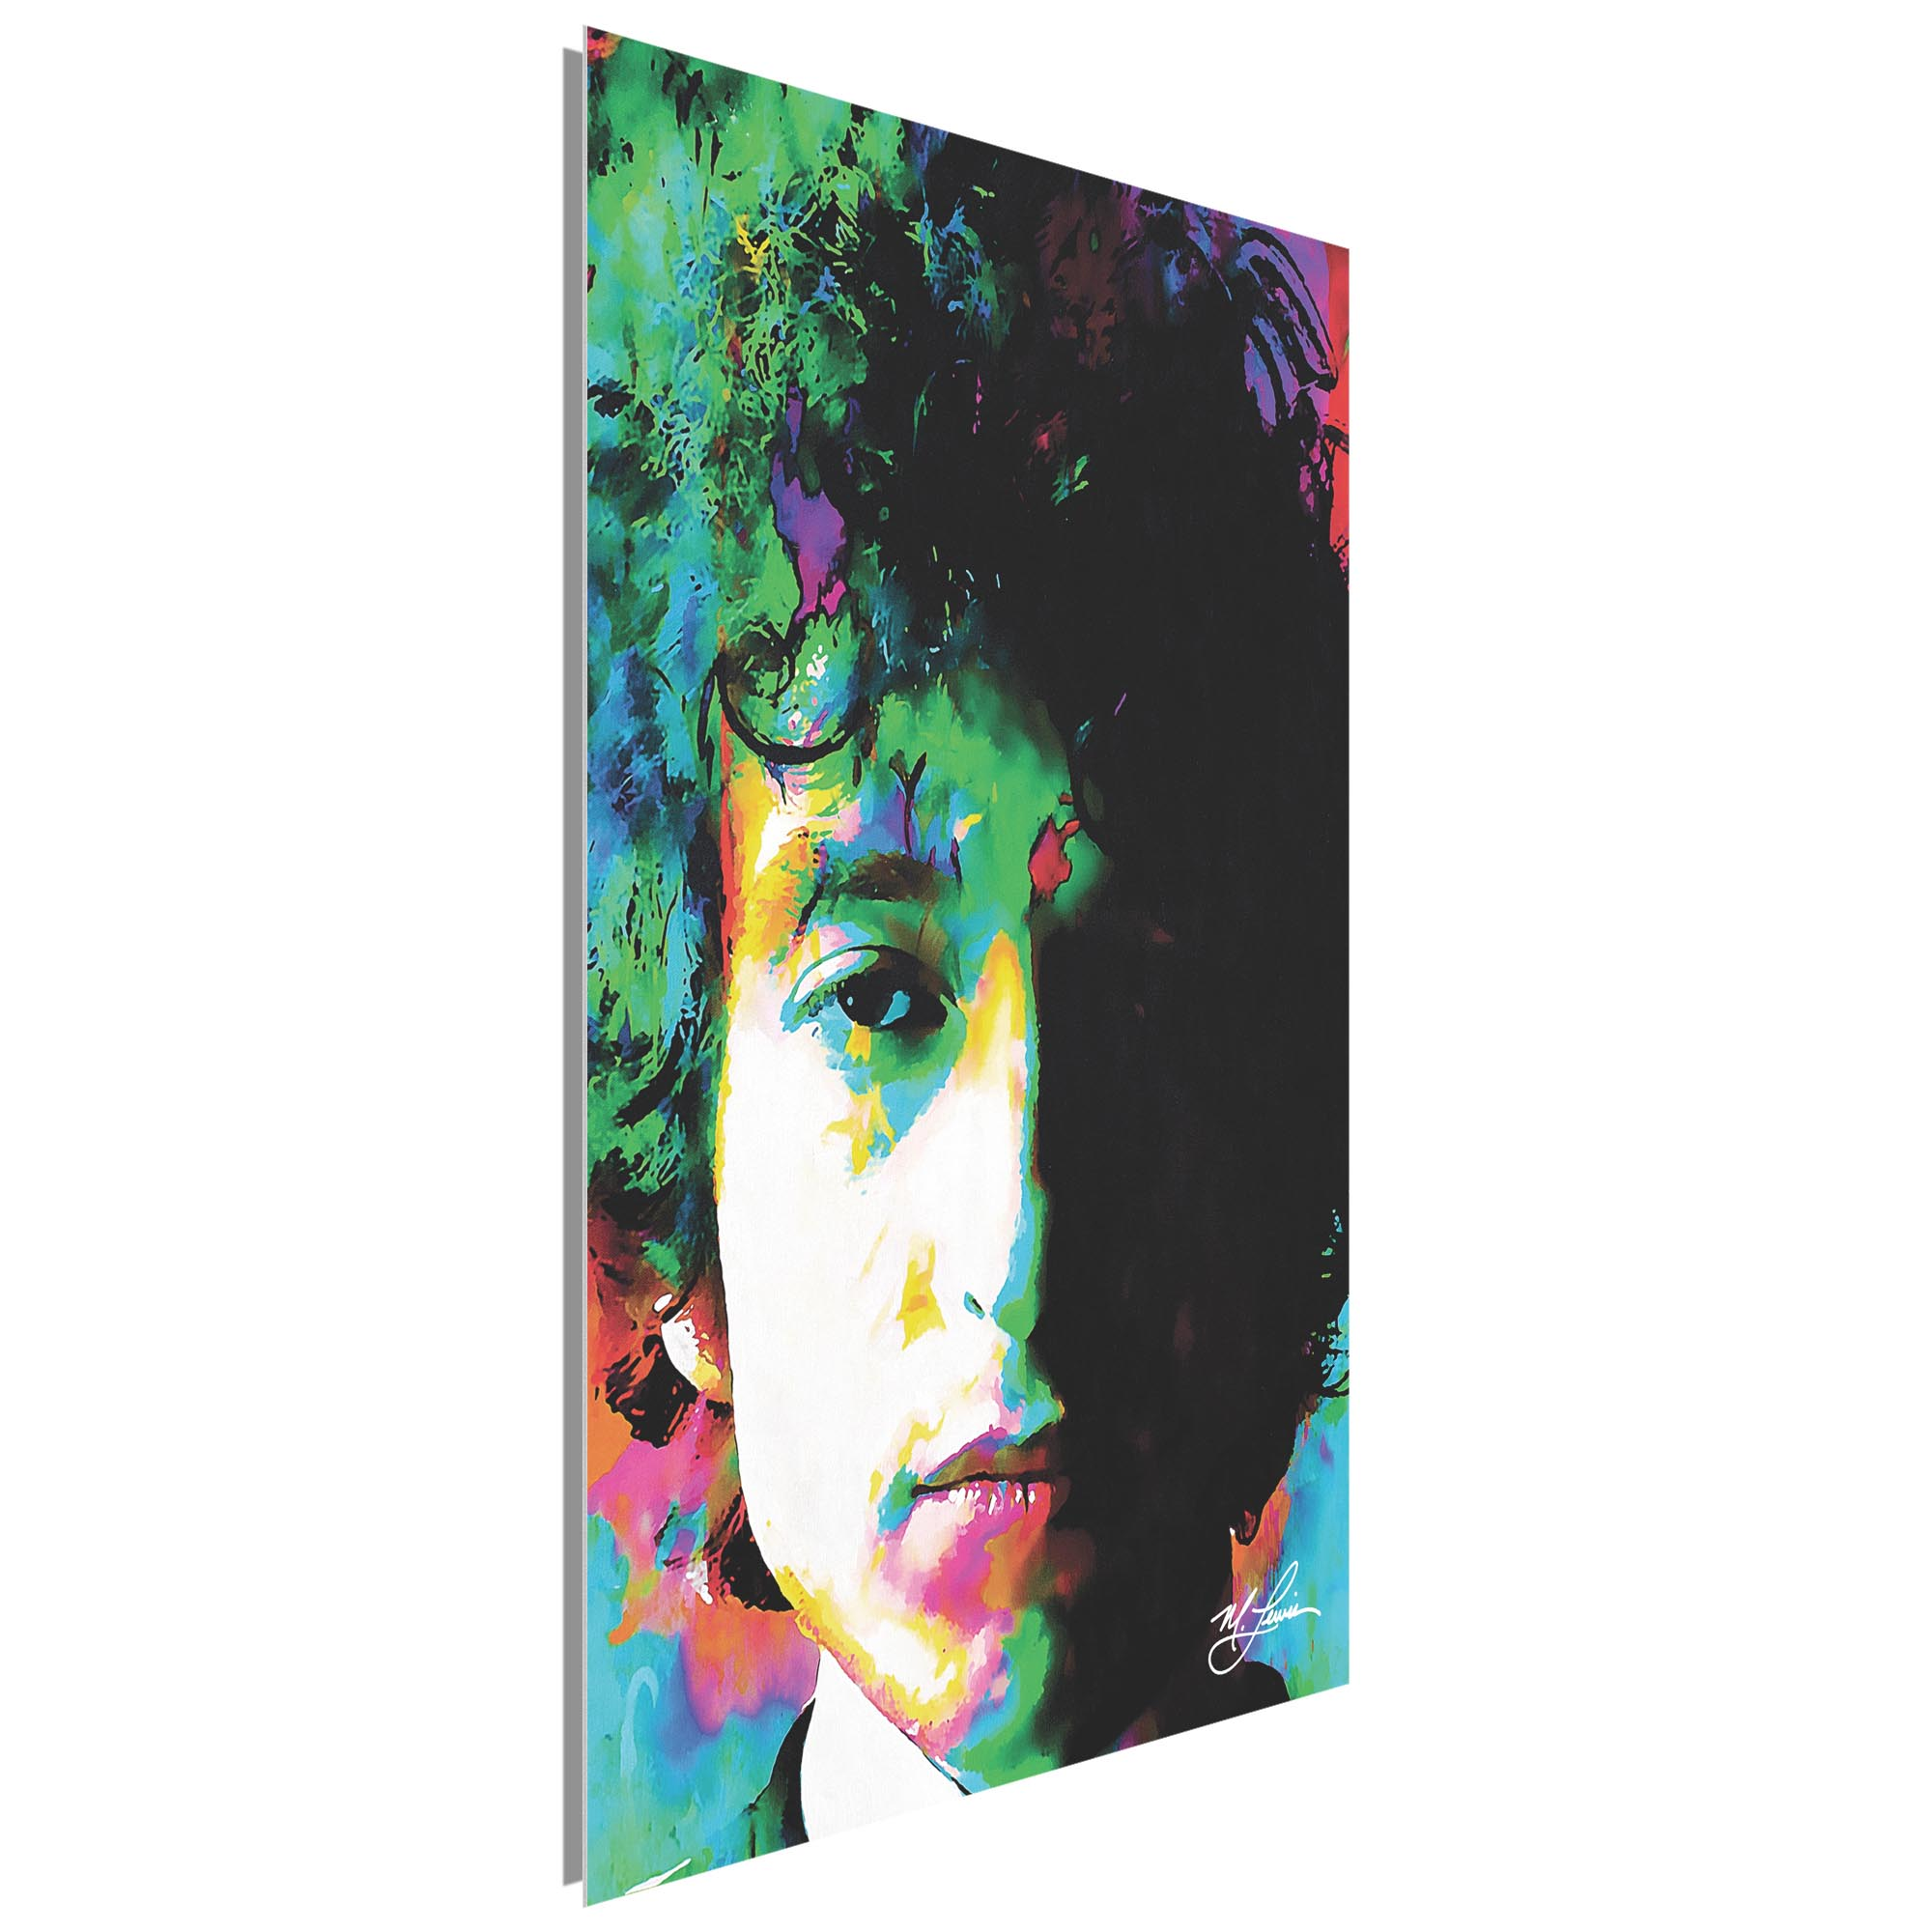 Bob Dylan Natural Memory 22x32 Metal or Plexiglass Pop Art Portrait - Image 2